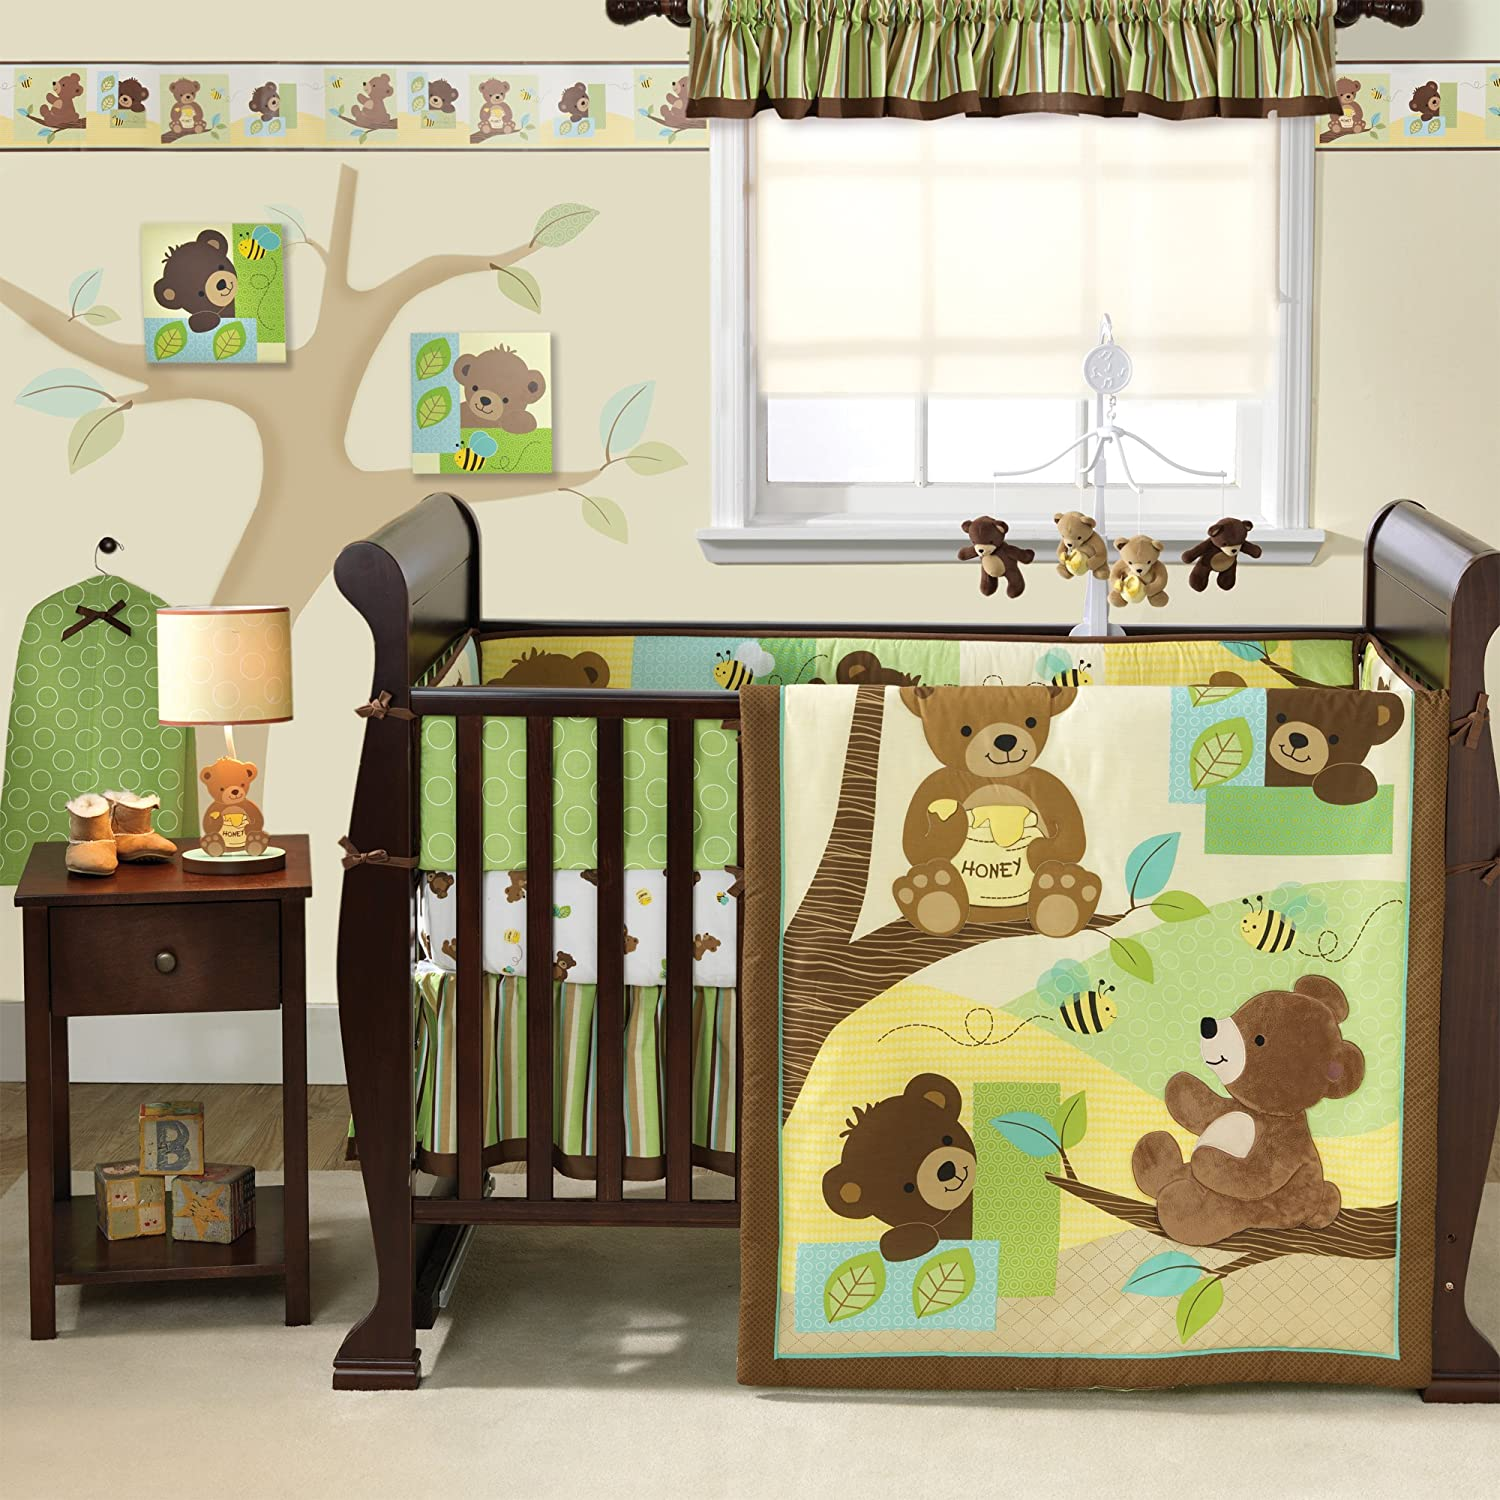 h solid flooring safari wall pattern green deer toys designs baby bedding wood sets modern crib color and brown white themed cartoon painted ideas hang cots boy nursery character on laminate for bed